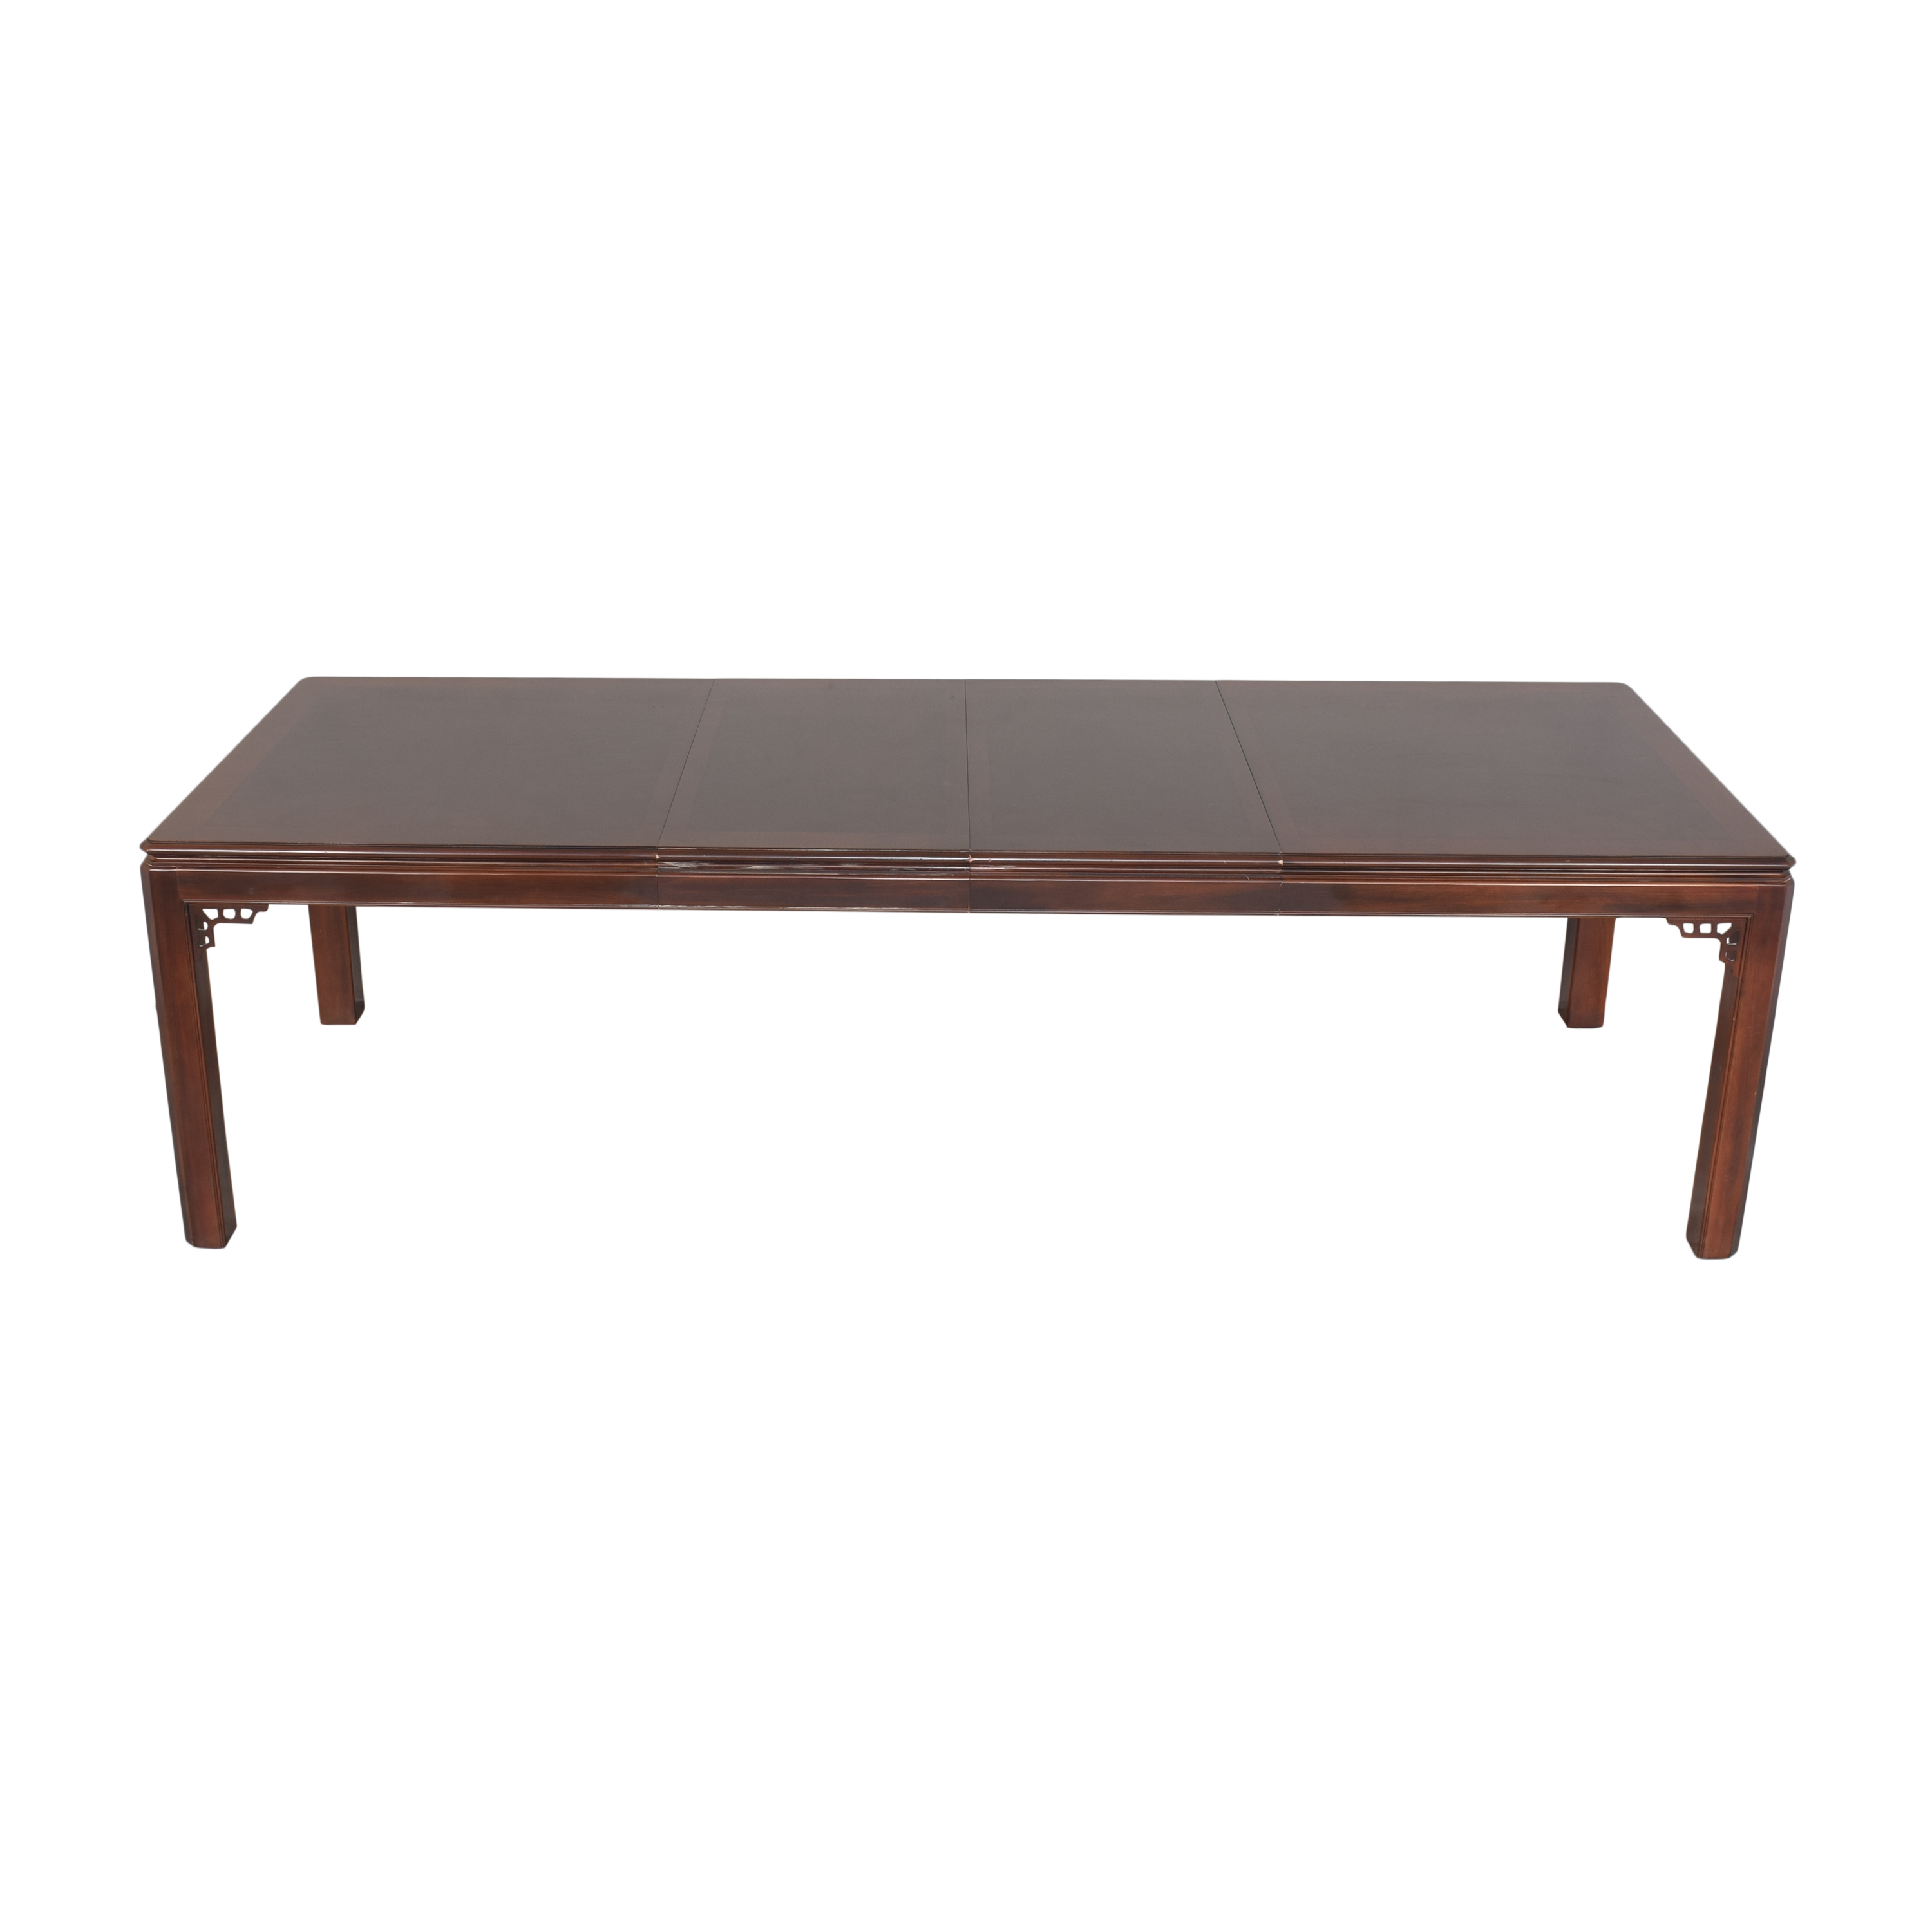 Drexel Chippendale Extendable Dining Table / Dinner Tables